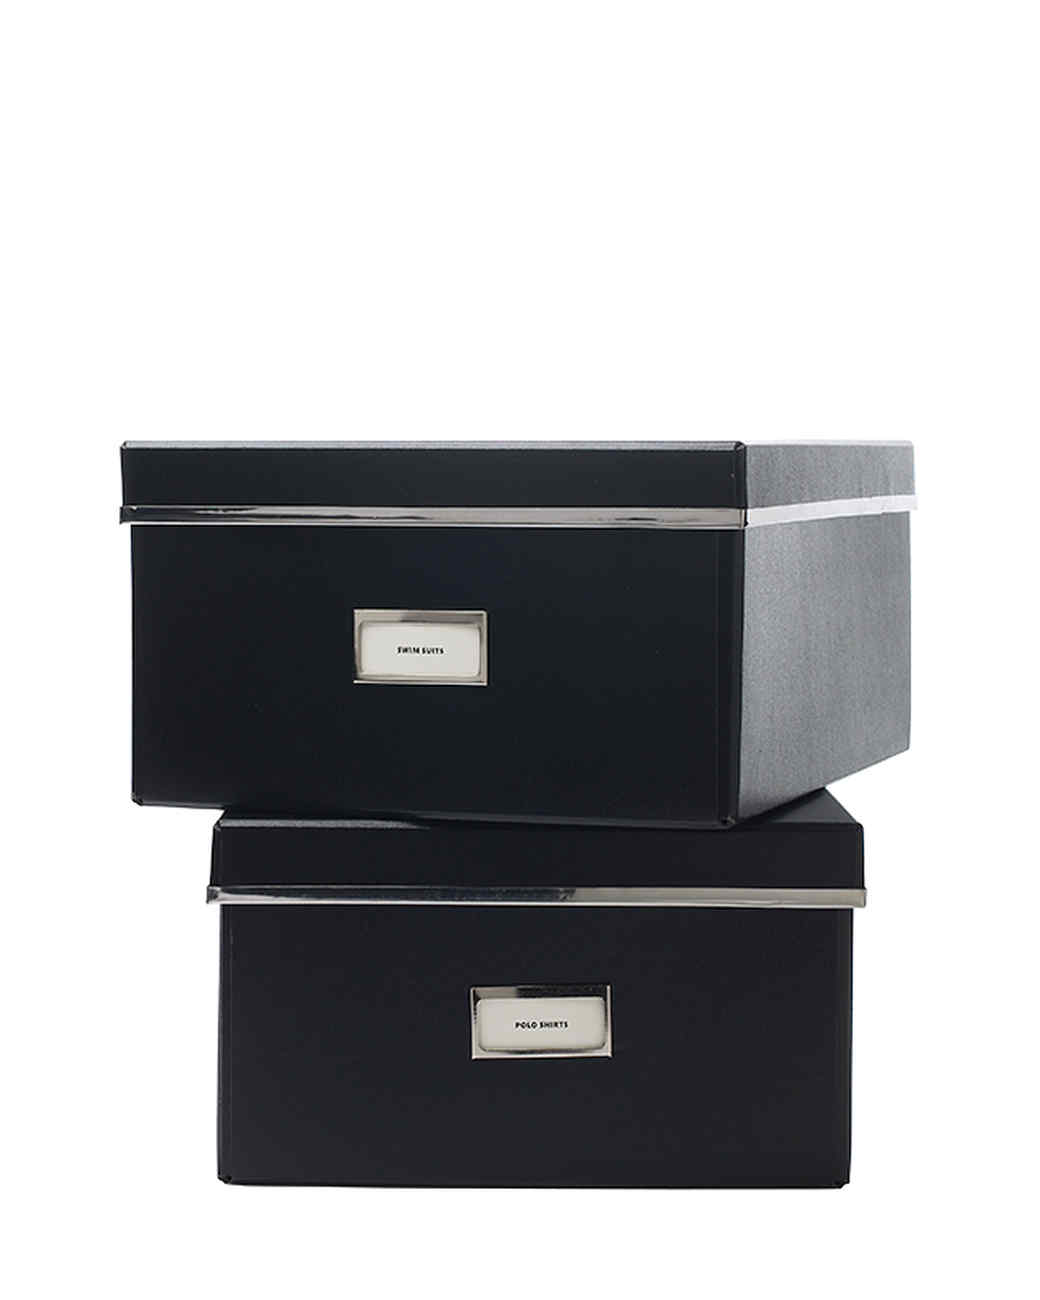 mld105280_0110_clothing_boxes2.jpg